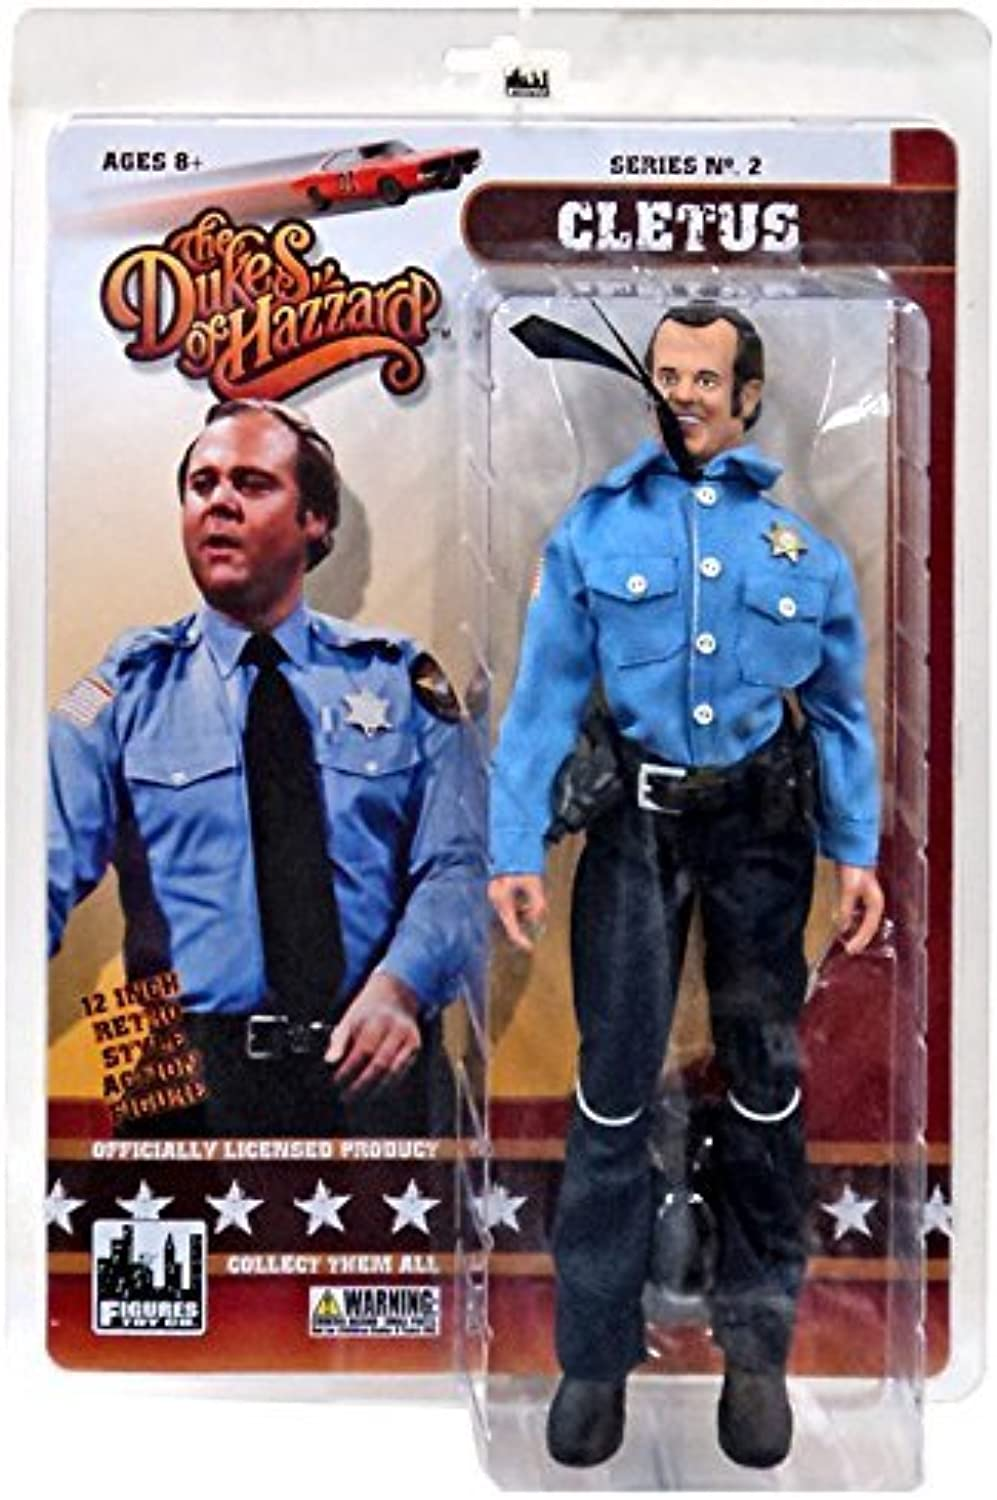 The Dukes of Hazzard Series 2 Cletus 12 Action Figure [12] by Dukes of Hazzard